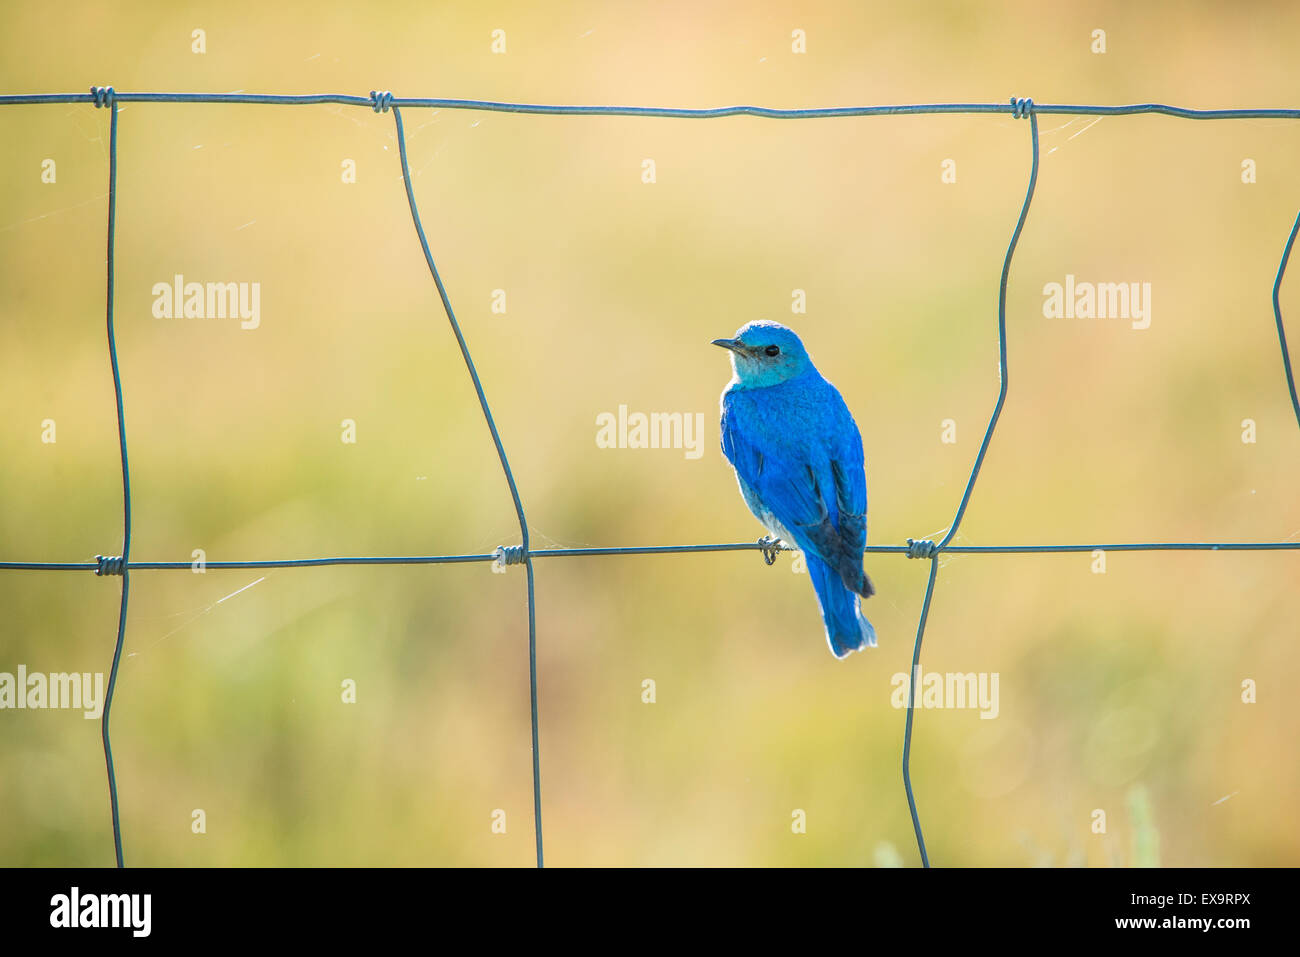 Birds,Male Mountain Blue Bird perched on a fence. Idaho State Bird, Idaho, USA - Stock Image